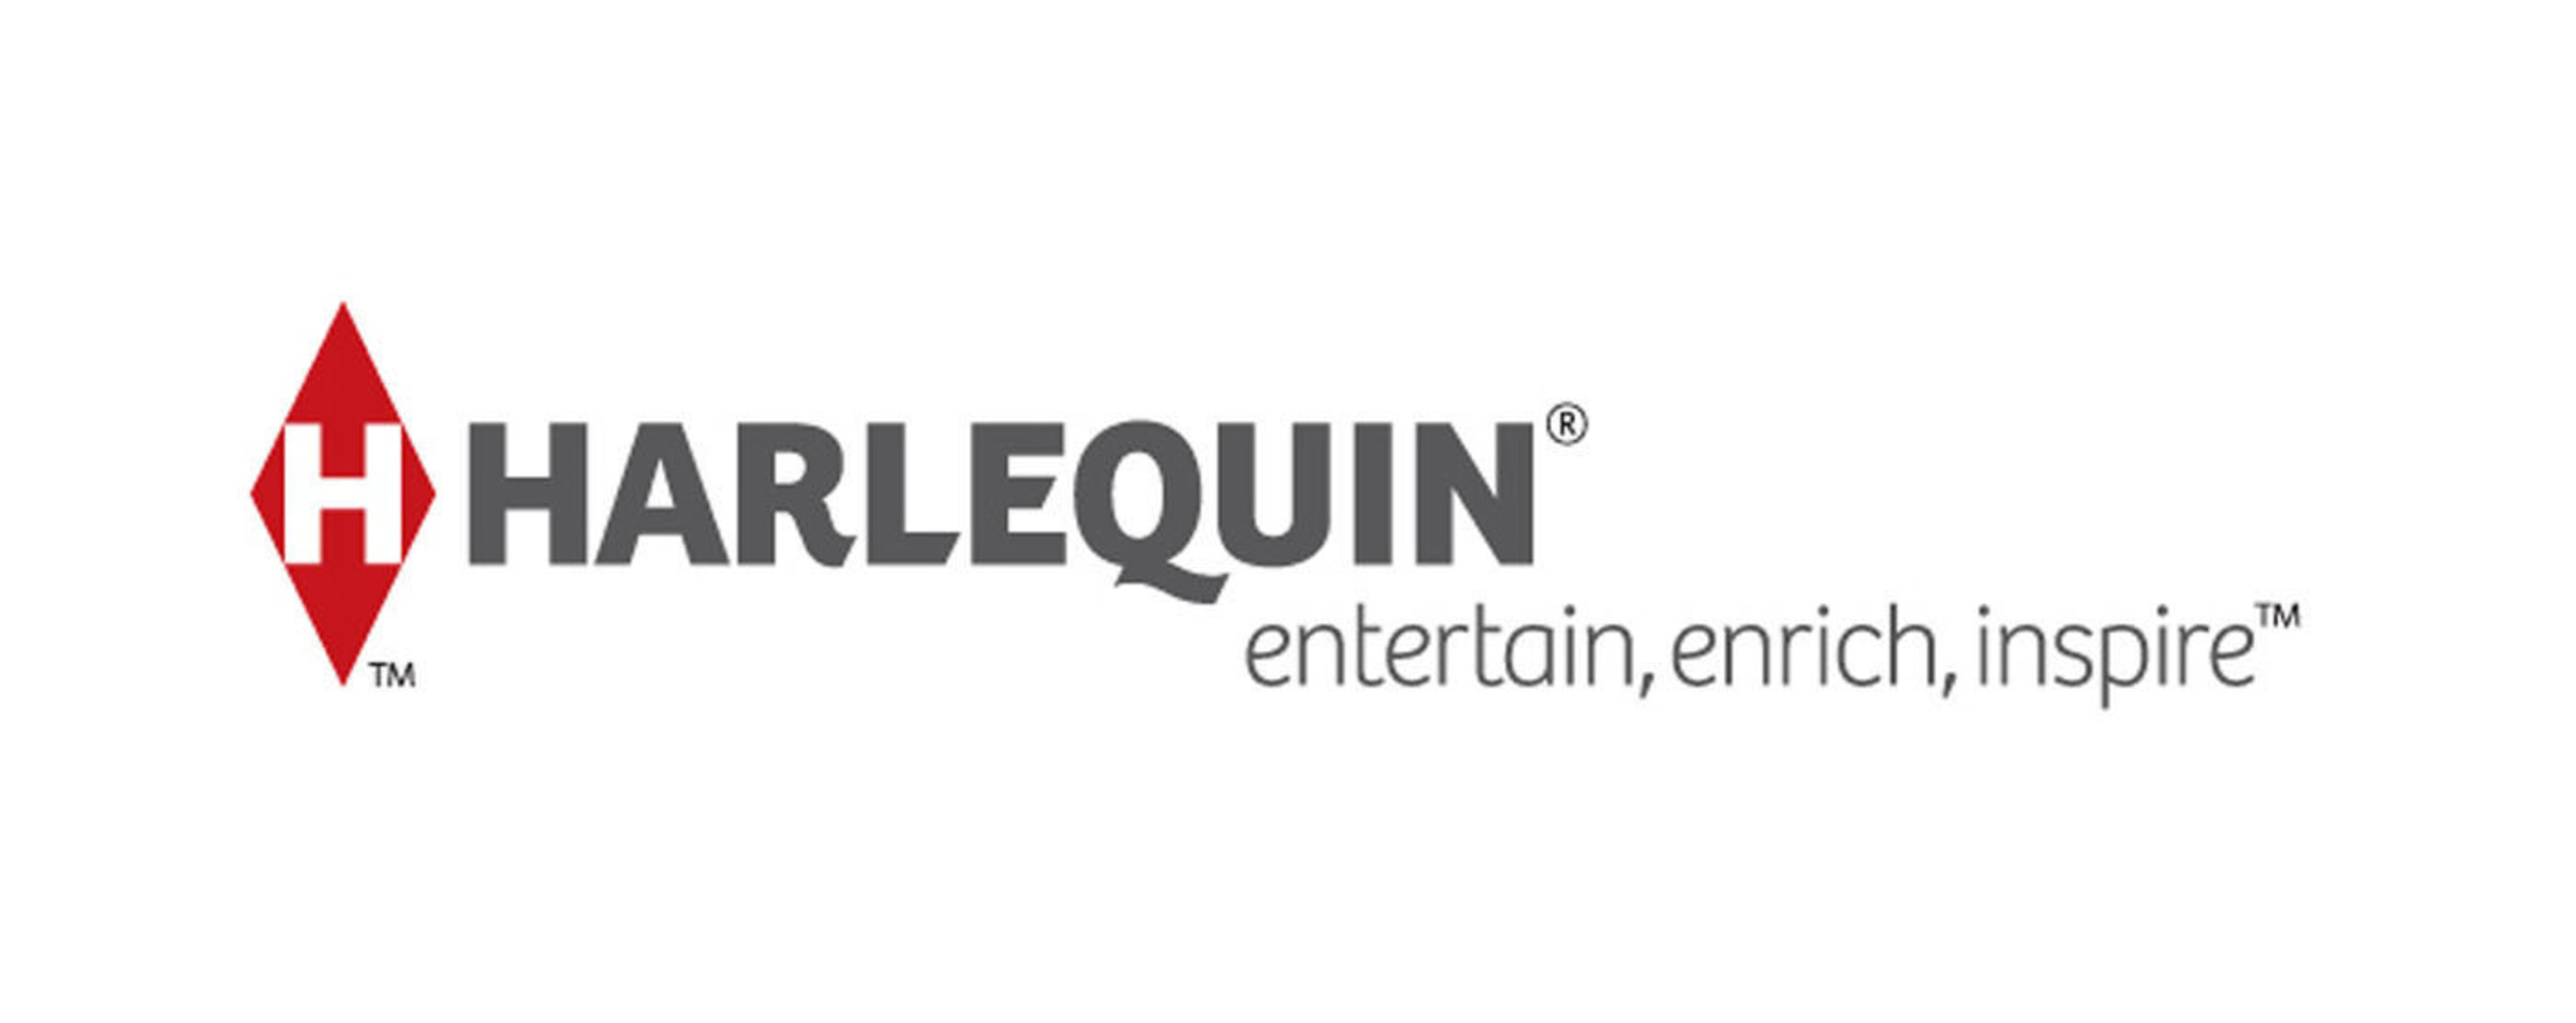 Three Heroic Women Honored with 2015 Harlequin More Than Words Awards